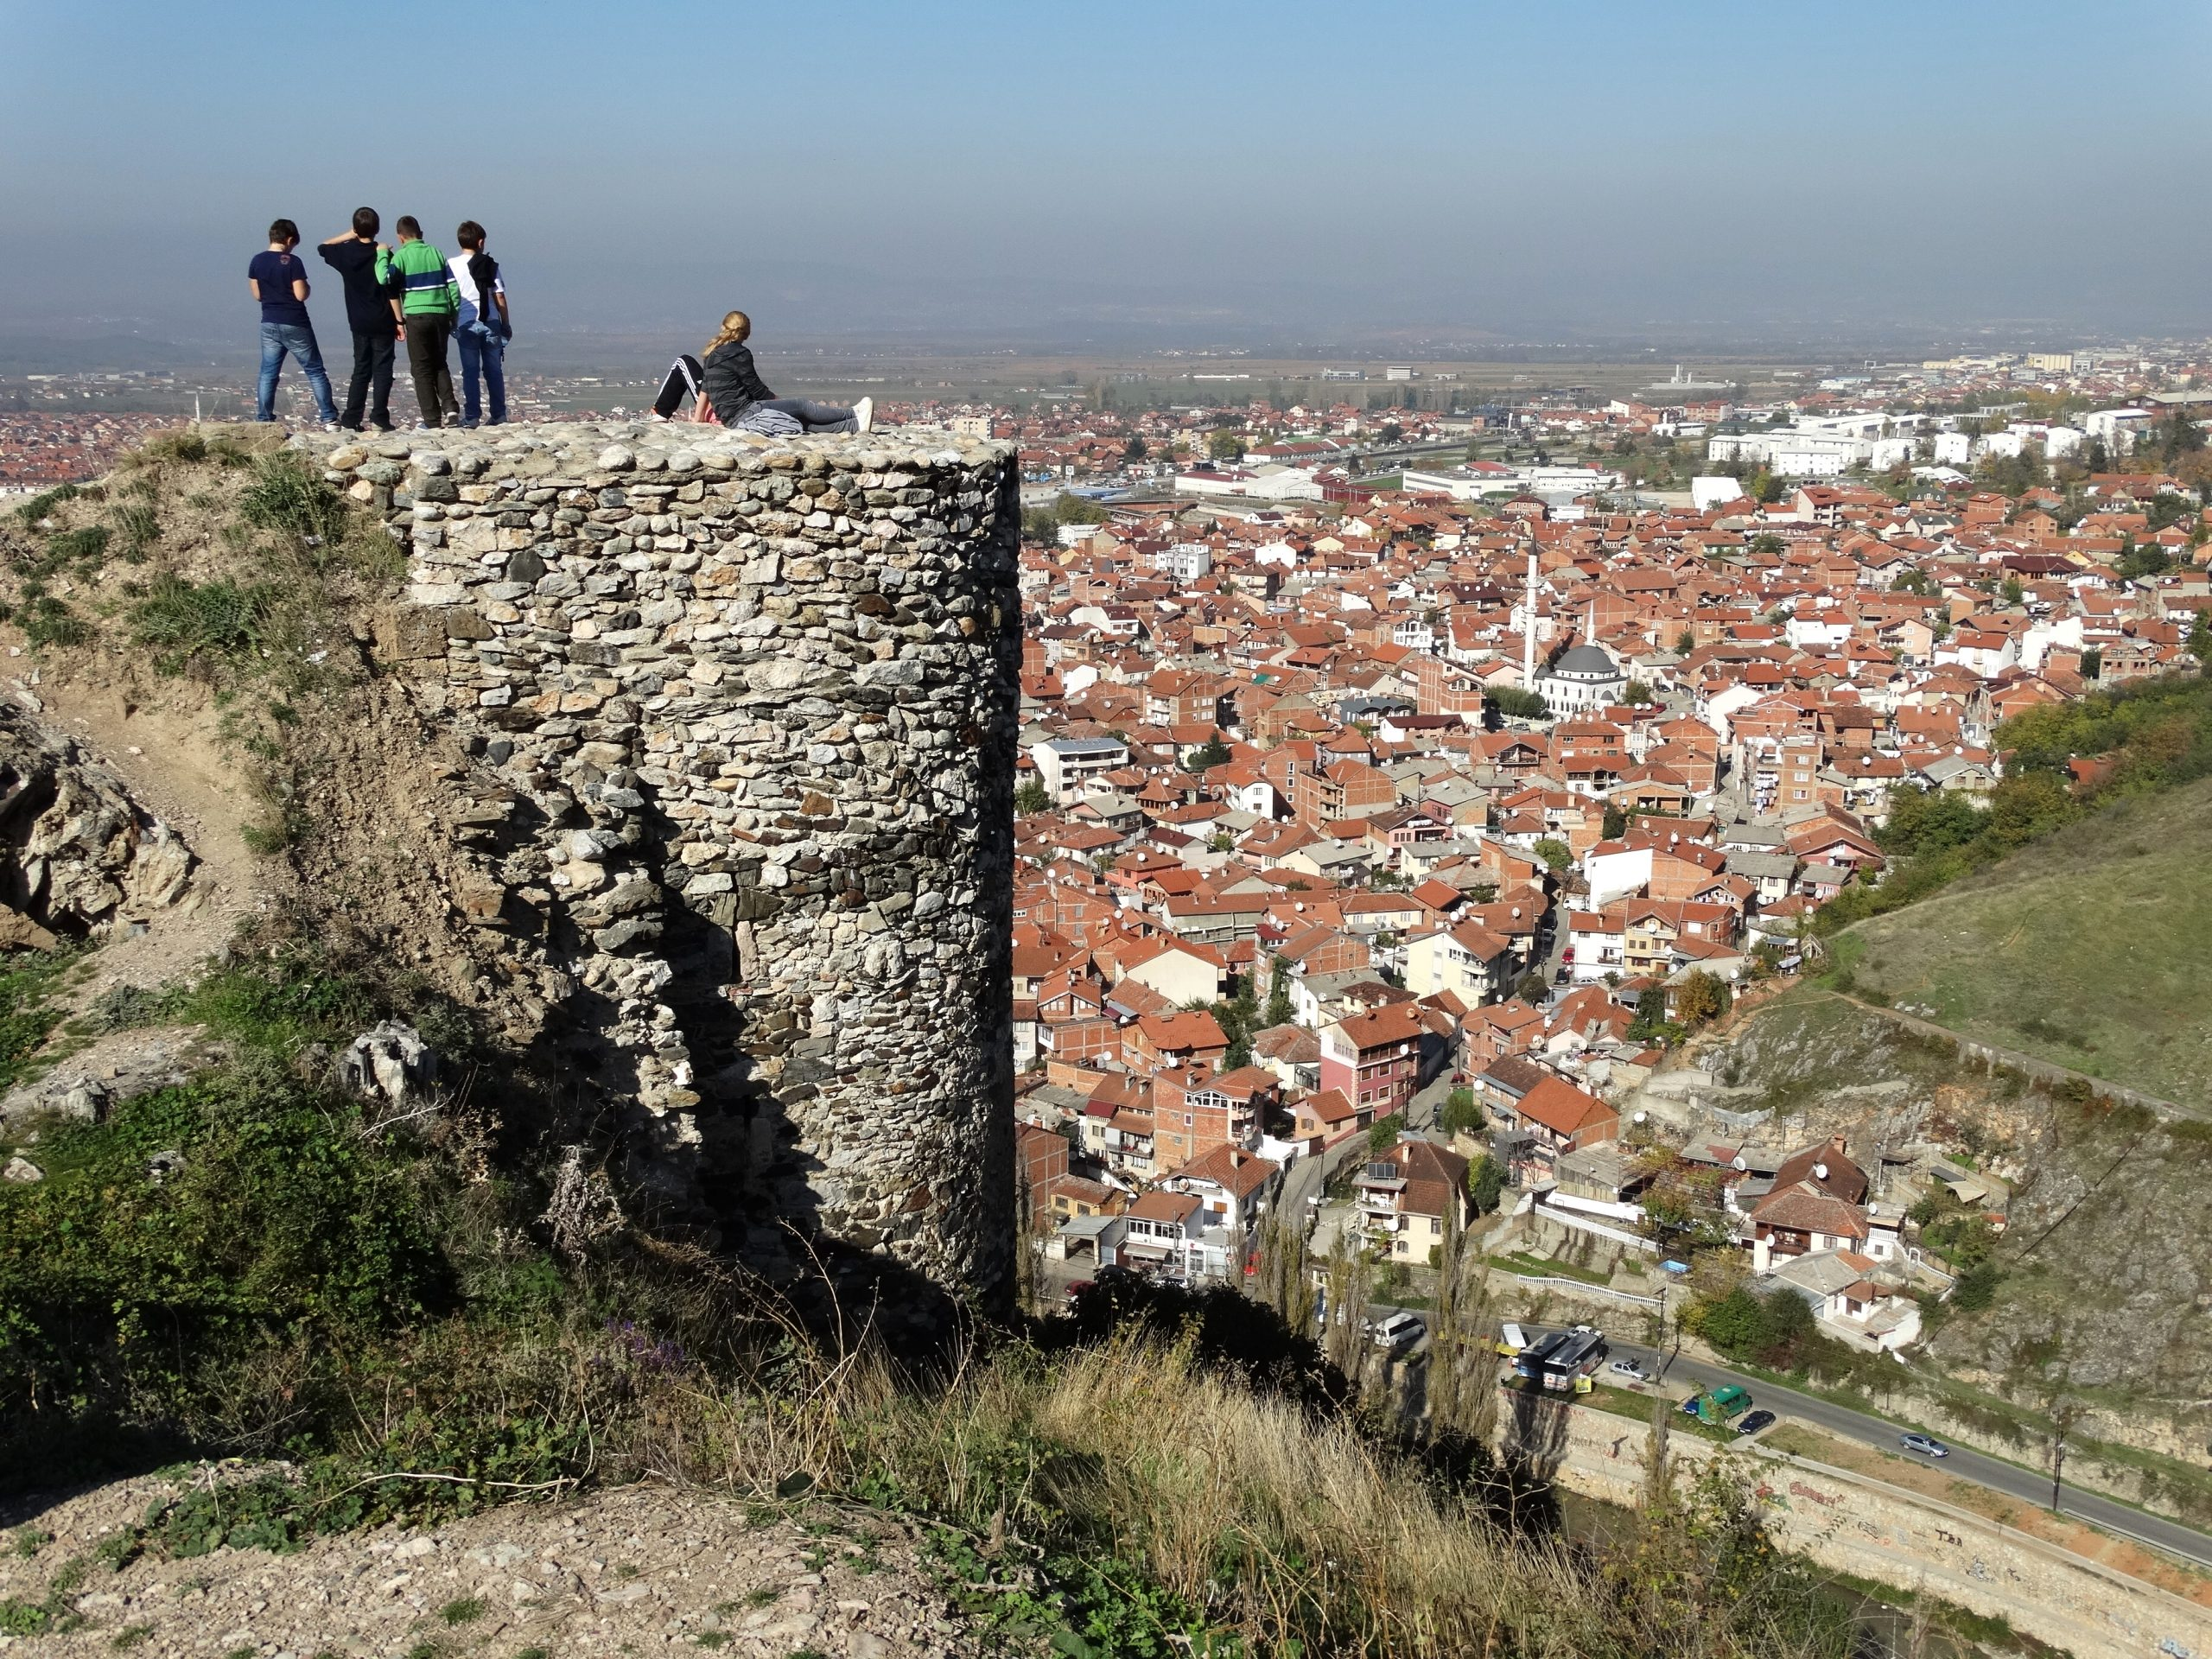 Castle_Fortifications_with_City_Backdrop_-_Prizren_-_Kosovo